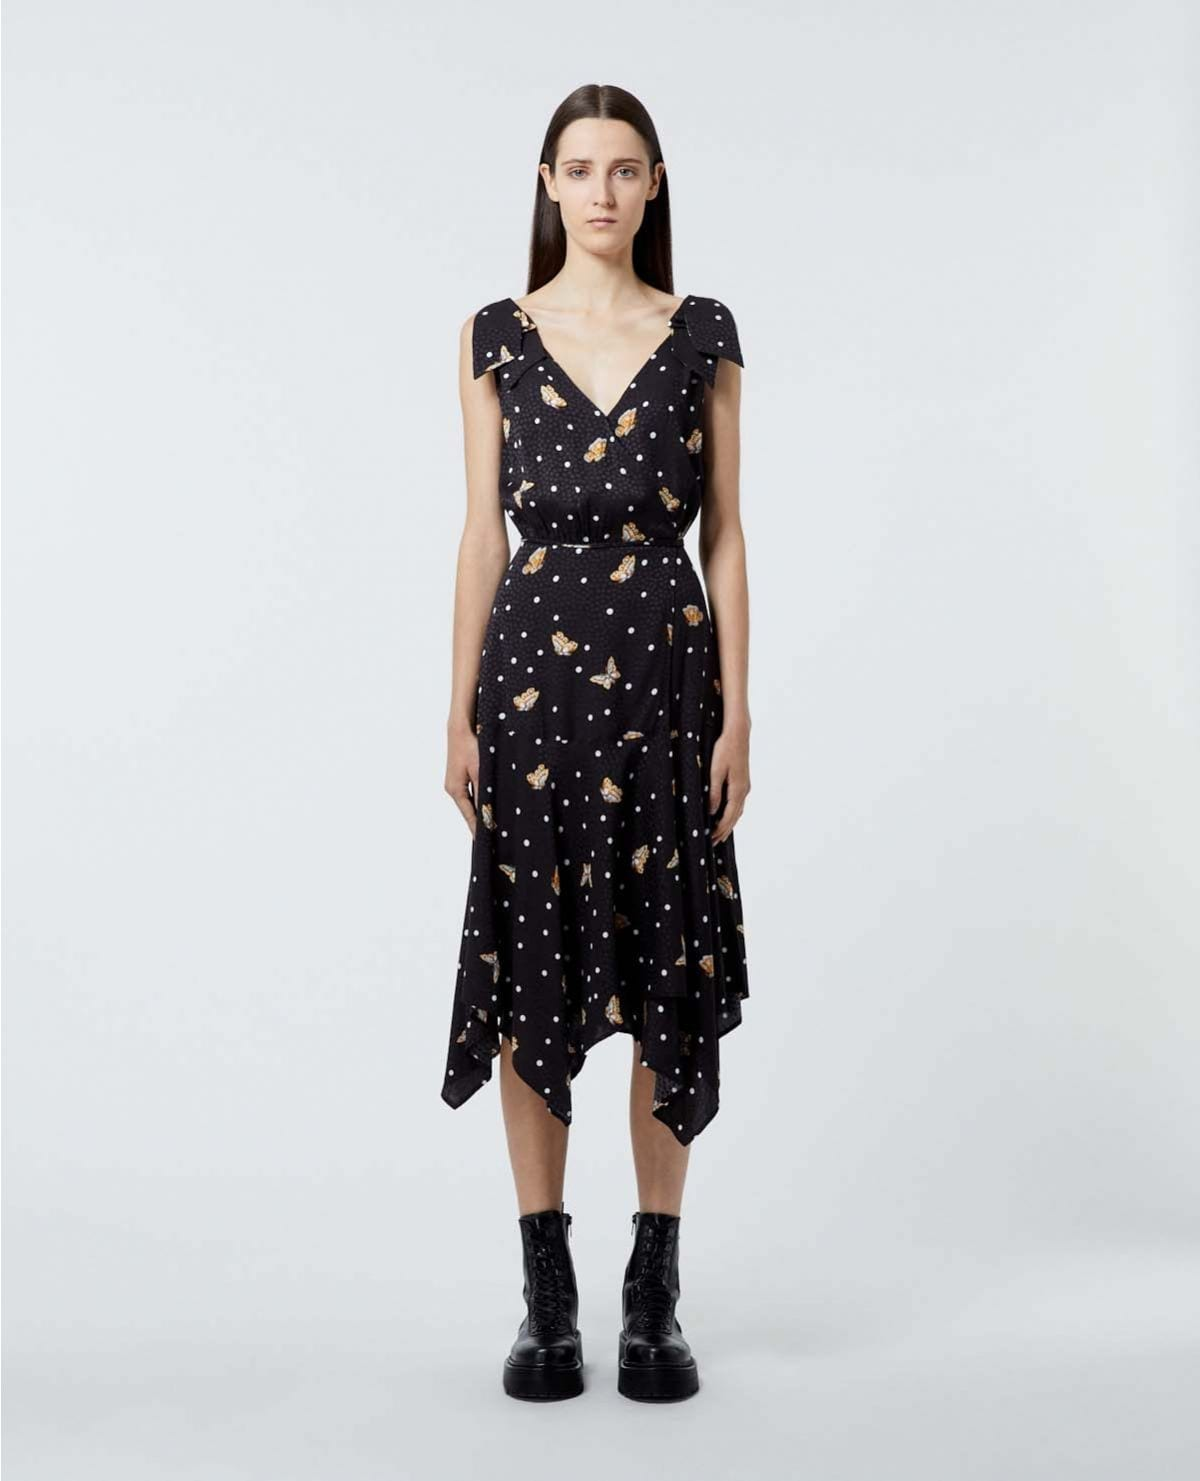 THE KOOPLES Butterfly Motif Black Wrap Dress